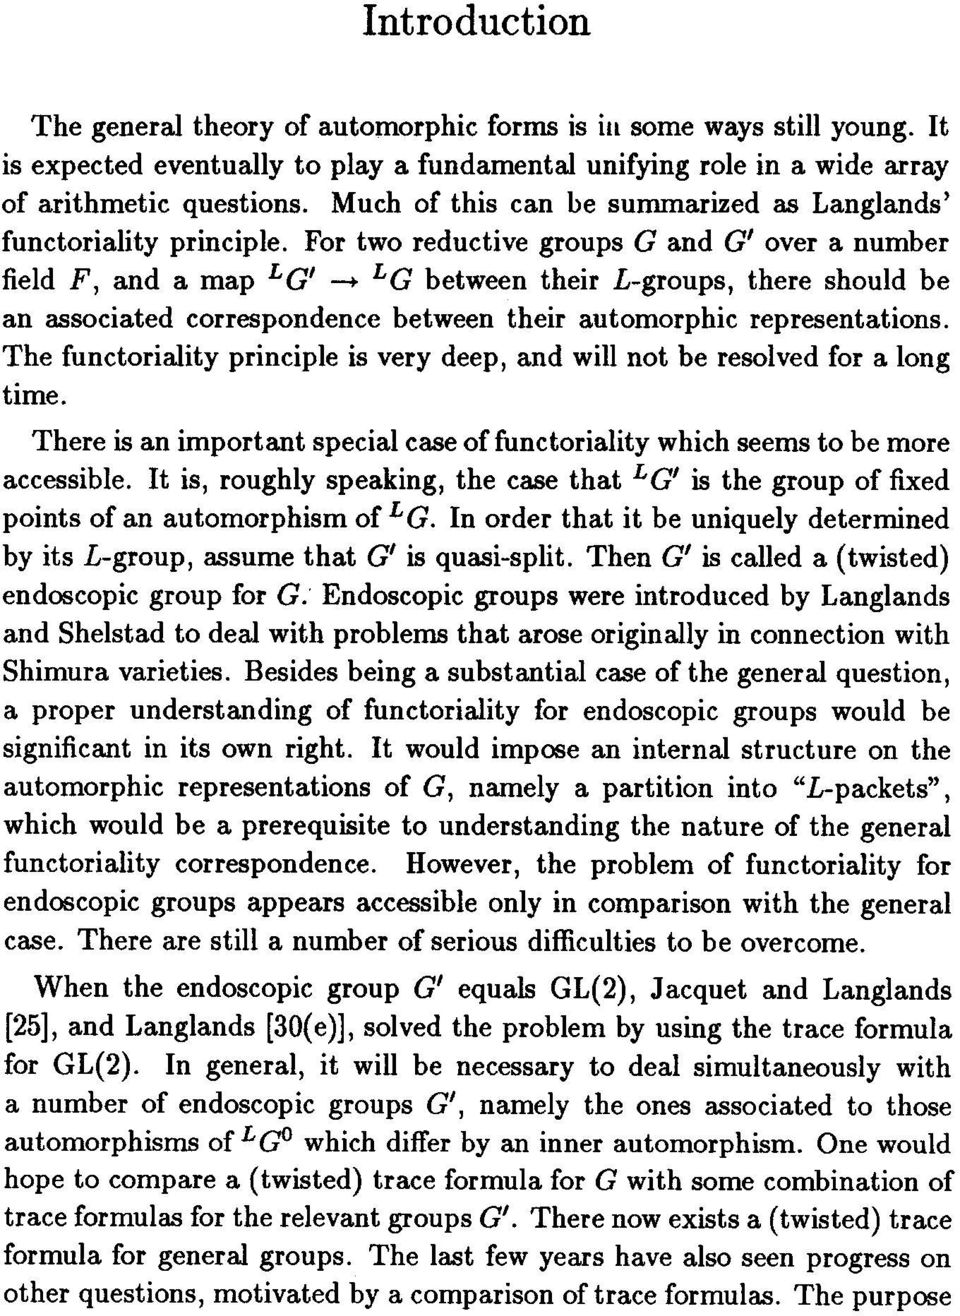 For two reductive groups G and G' over a number field F, and a map LG' LG between their L-groups, there should be an associated correspondence between their automorphic representations.